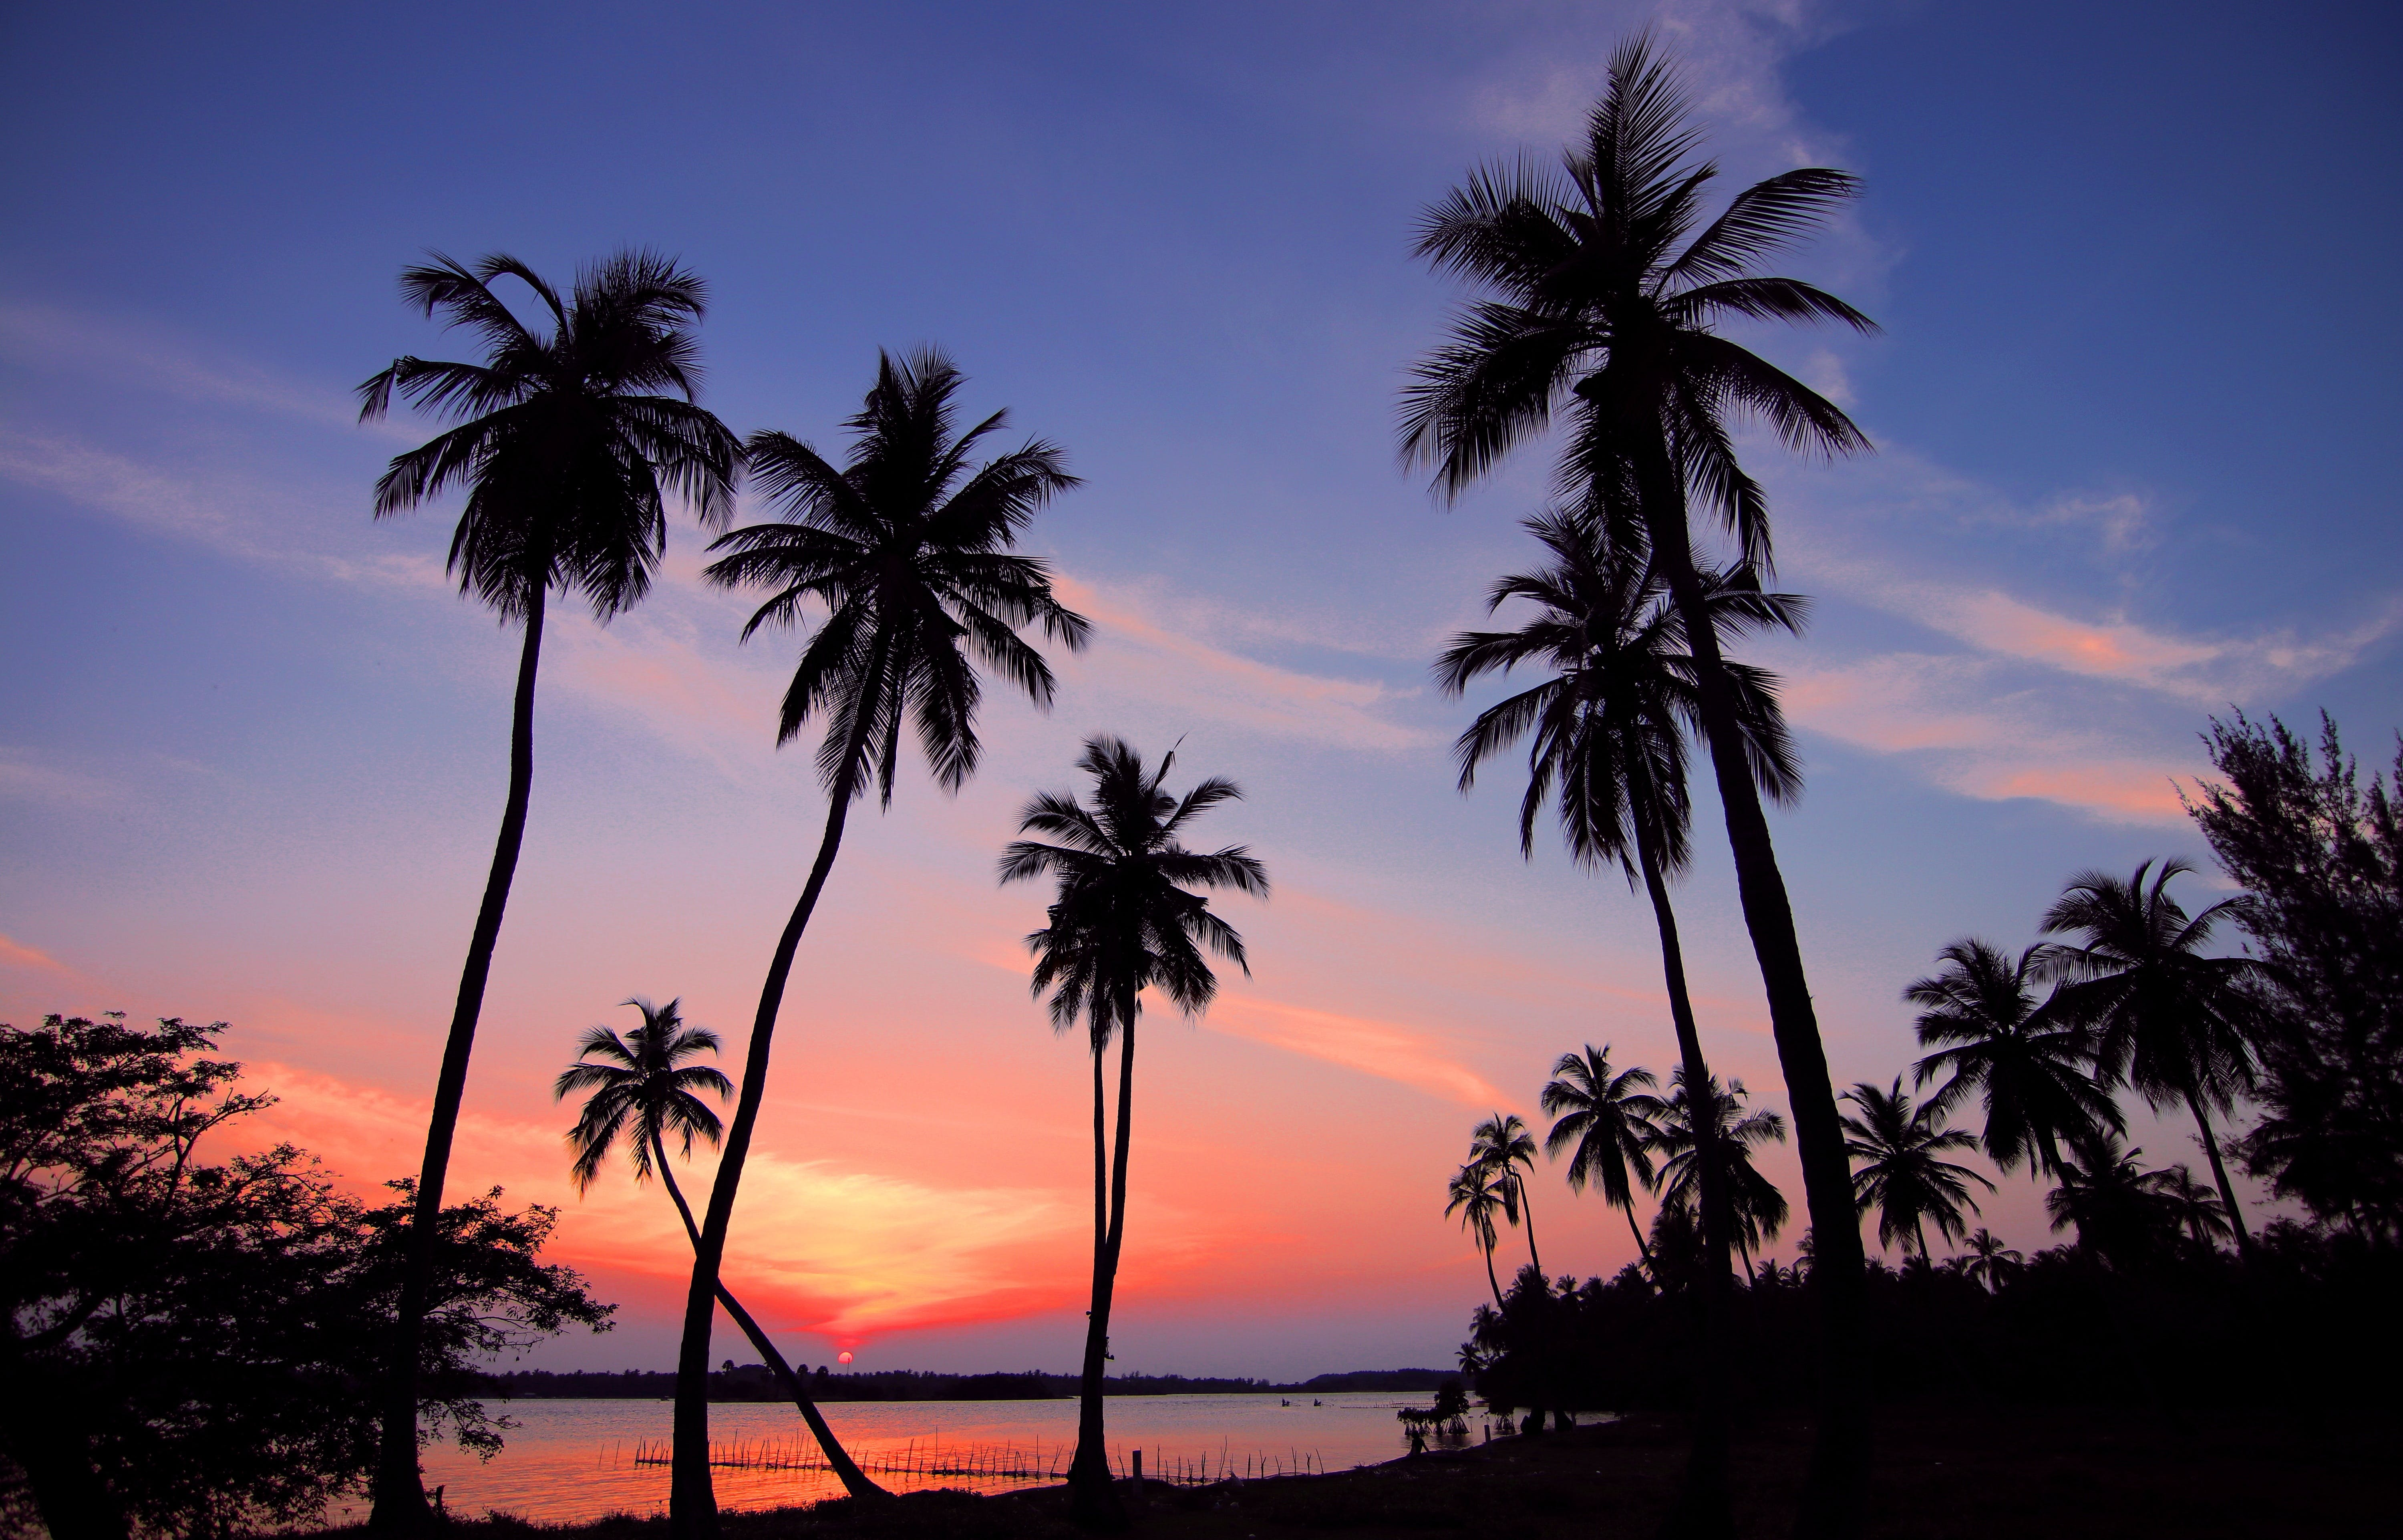 Silhouette of Palm Trees Near Shoreline